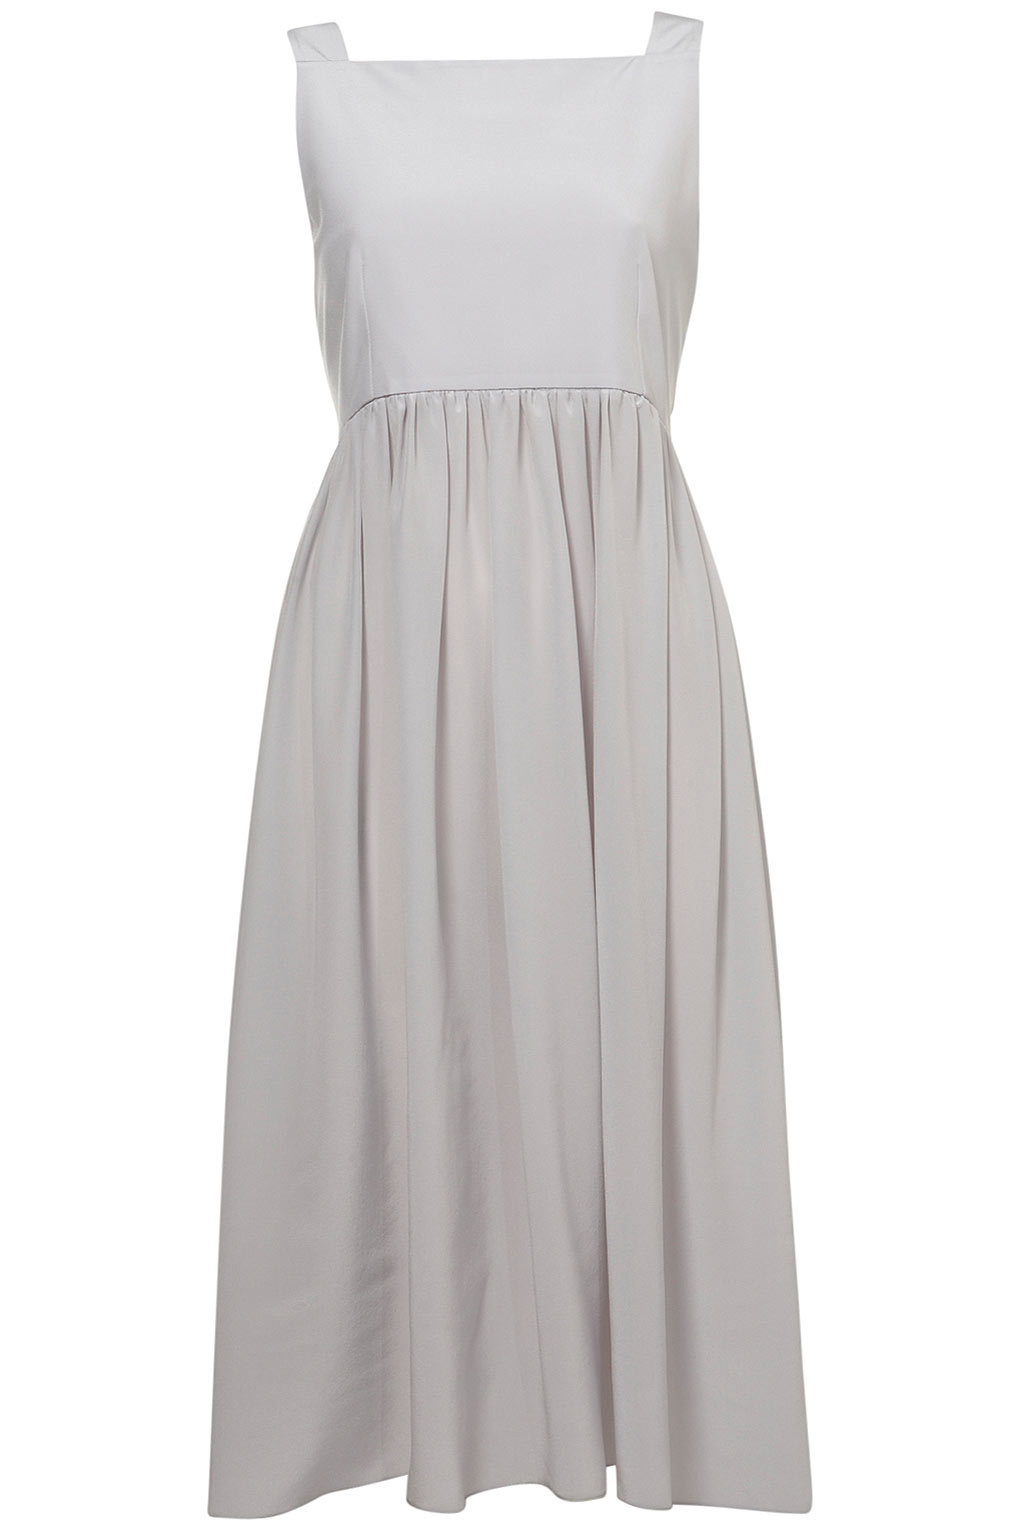 Topshop Amish Pini Dress By Boutique In Light Grey Gray